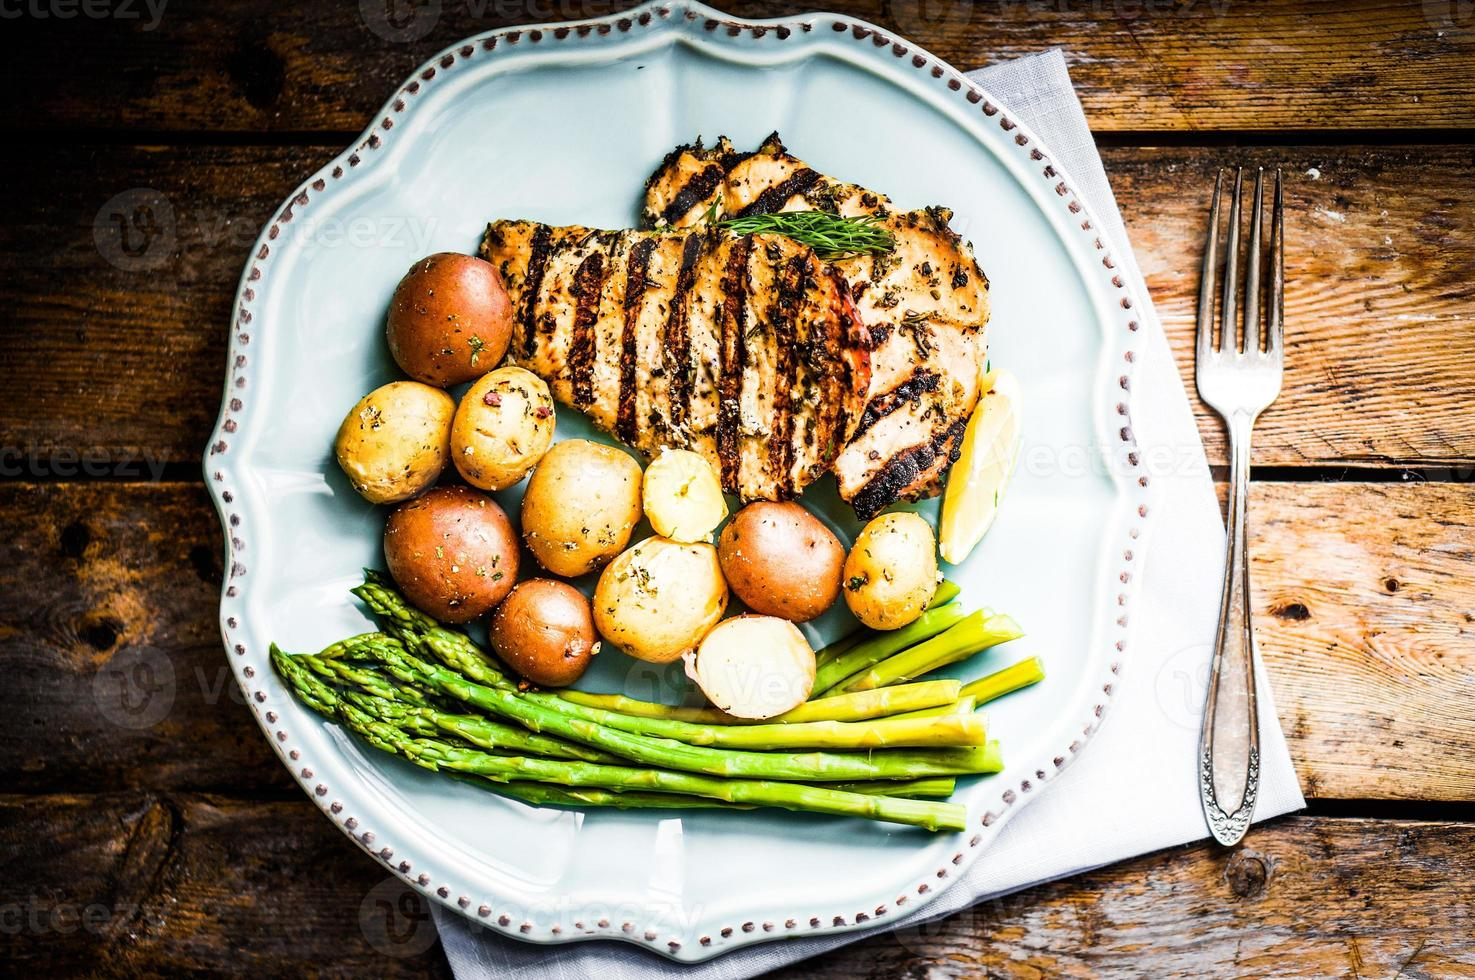 Grilled chicken with potatoes and asparagus on wooden background photo